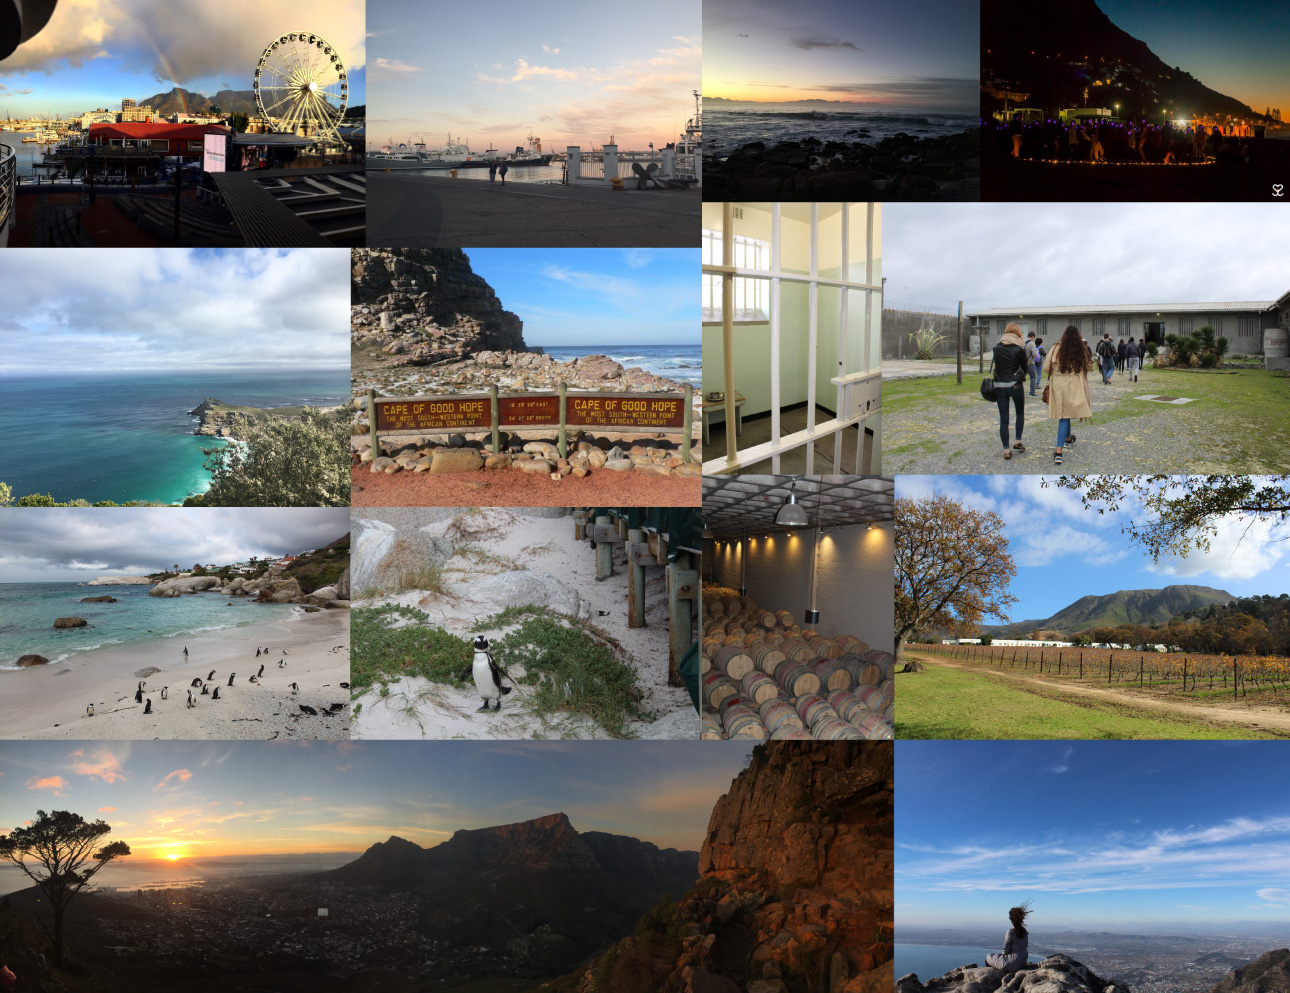 Interning in Cape Town: Travel Blog